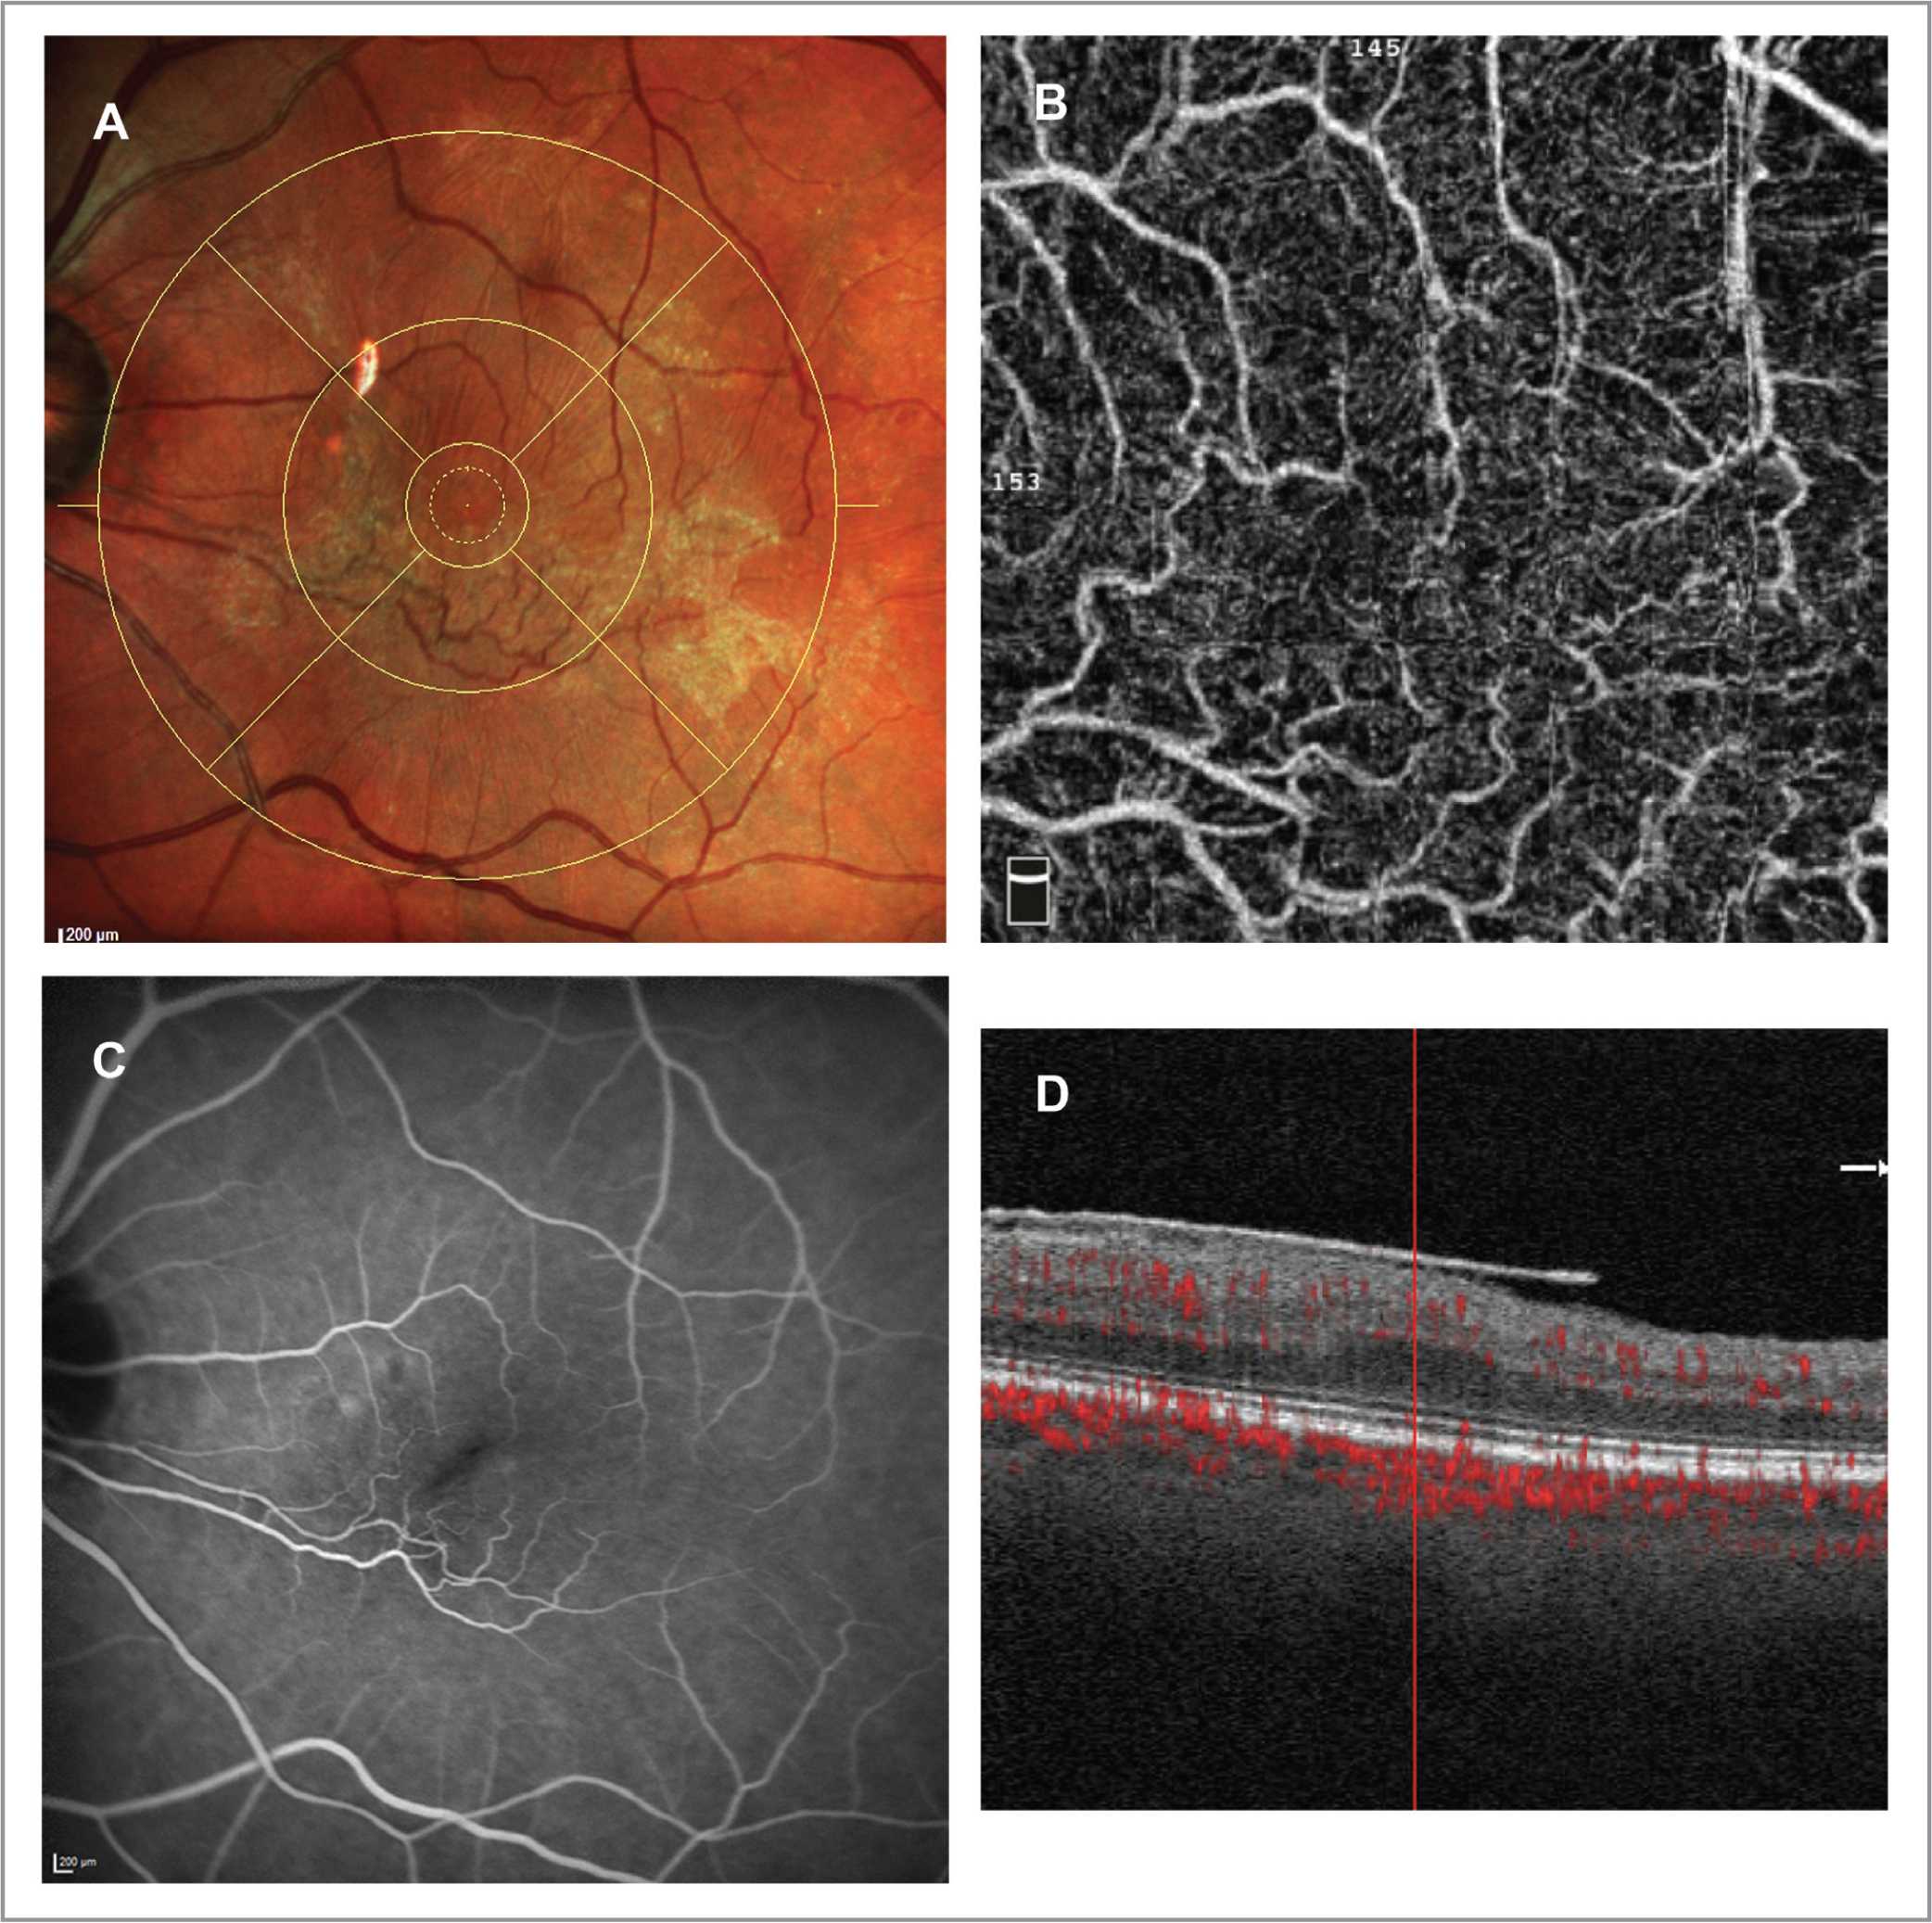 (A) demonstrates an Early Treatment Diabetic Retinopathy Study circle overlay with a 1-mm inner diameter. The total membrane score is 5 (2 for each horizontal quadrant, 1 for the inferior quadrant, and 0 for the superior quadrant). In the optical coherence tomography angiography (OCTA) image, the foveal avascular zone (FAZ) is absent, totally vascularized (B). The FAZ change is also apparent in fundus angiography, seen as an oblique slit running toward the inferior-nasal macula (C). The spectral-domain OCT image cutting through the center of fovea shows loss of foveal pit with some thickening of the central fovea secondary to the epiretinal membrane (D). Note, the signal strength index of the OCTA image is 62 despite duplication of some retinal vessels.